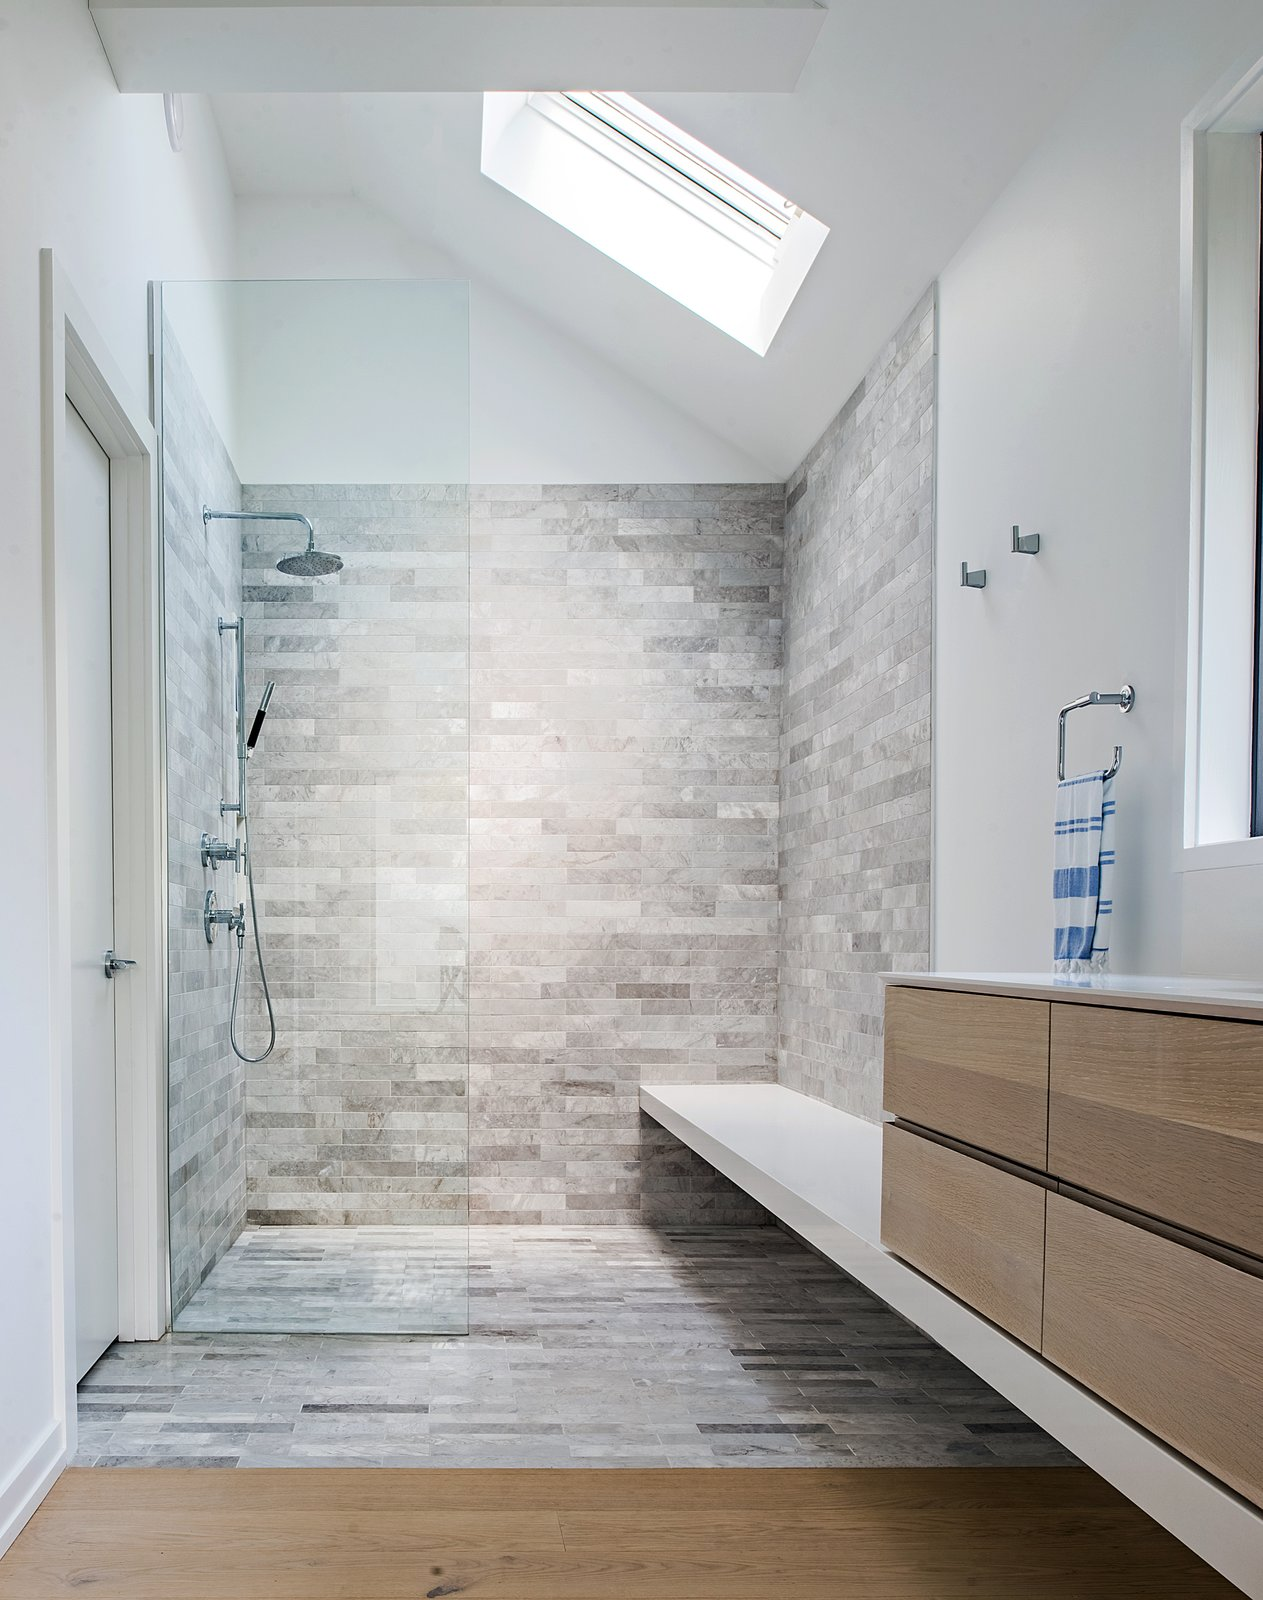 Tagged: Bath Room, Engineered Quartz Counter, Light Hardwood Floor, Freestanding Tub, Undermount Sink, Open Shower, Ceiling Lighting, and Stone Tile Wall.  Richview Residence